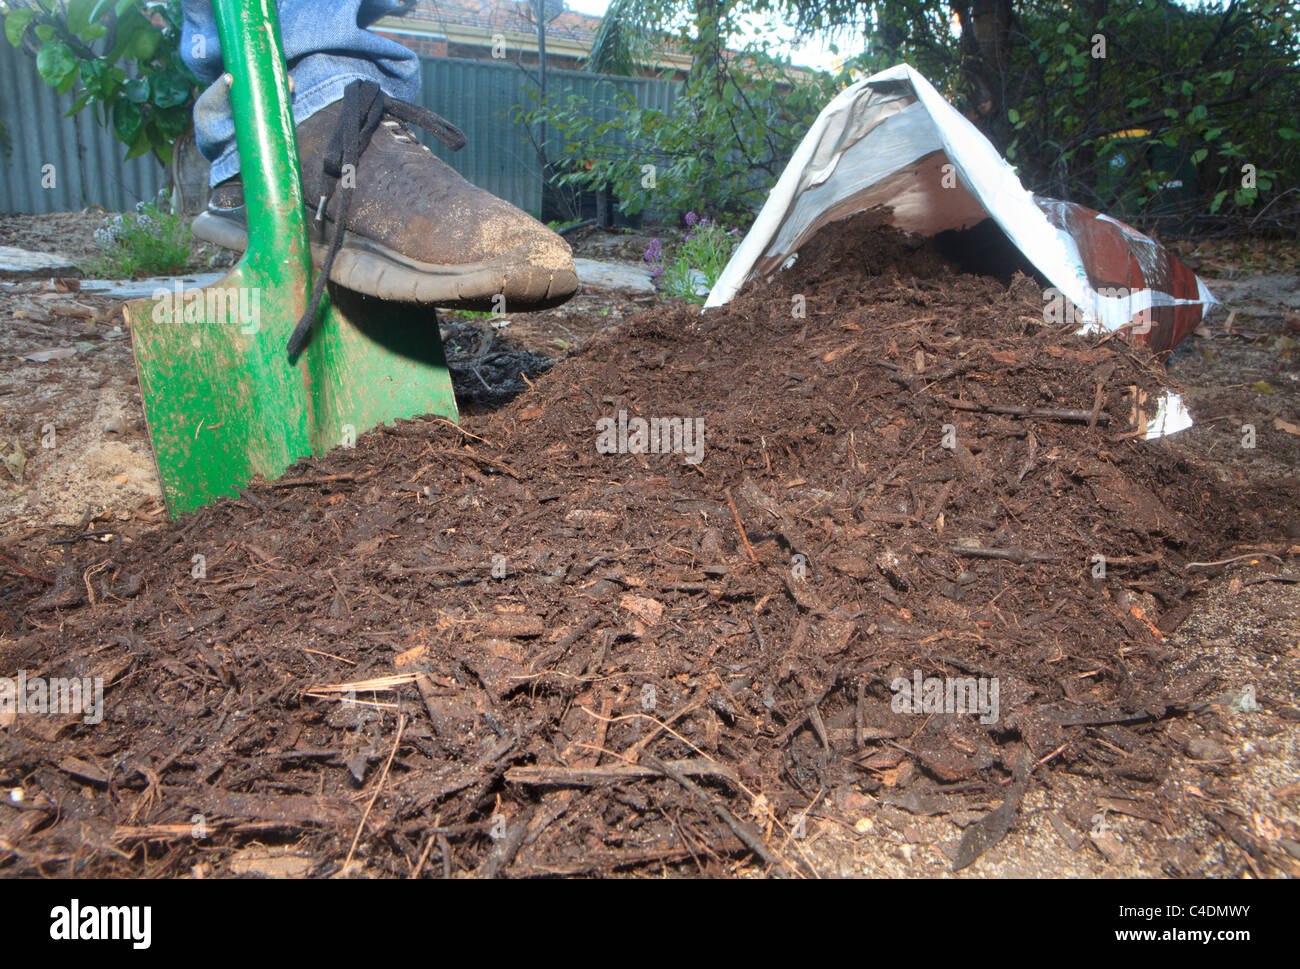 Mulch made from shredded bark and wood poured from a bag onto the garden - Stock Image